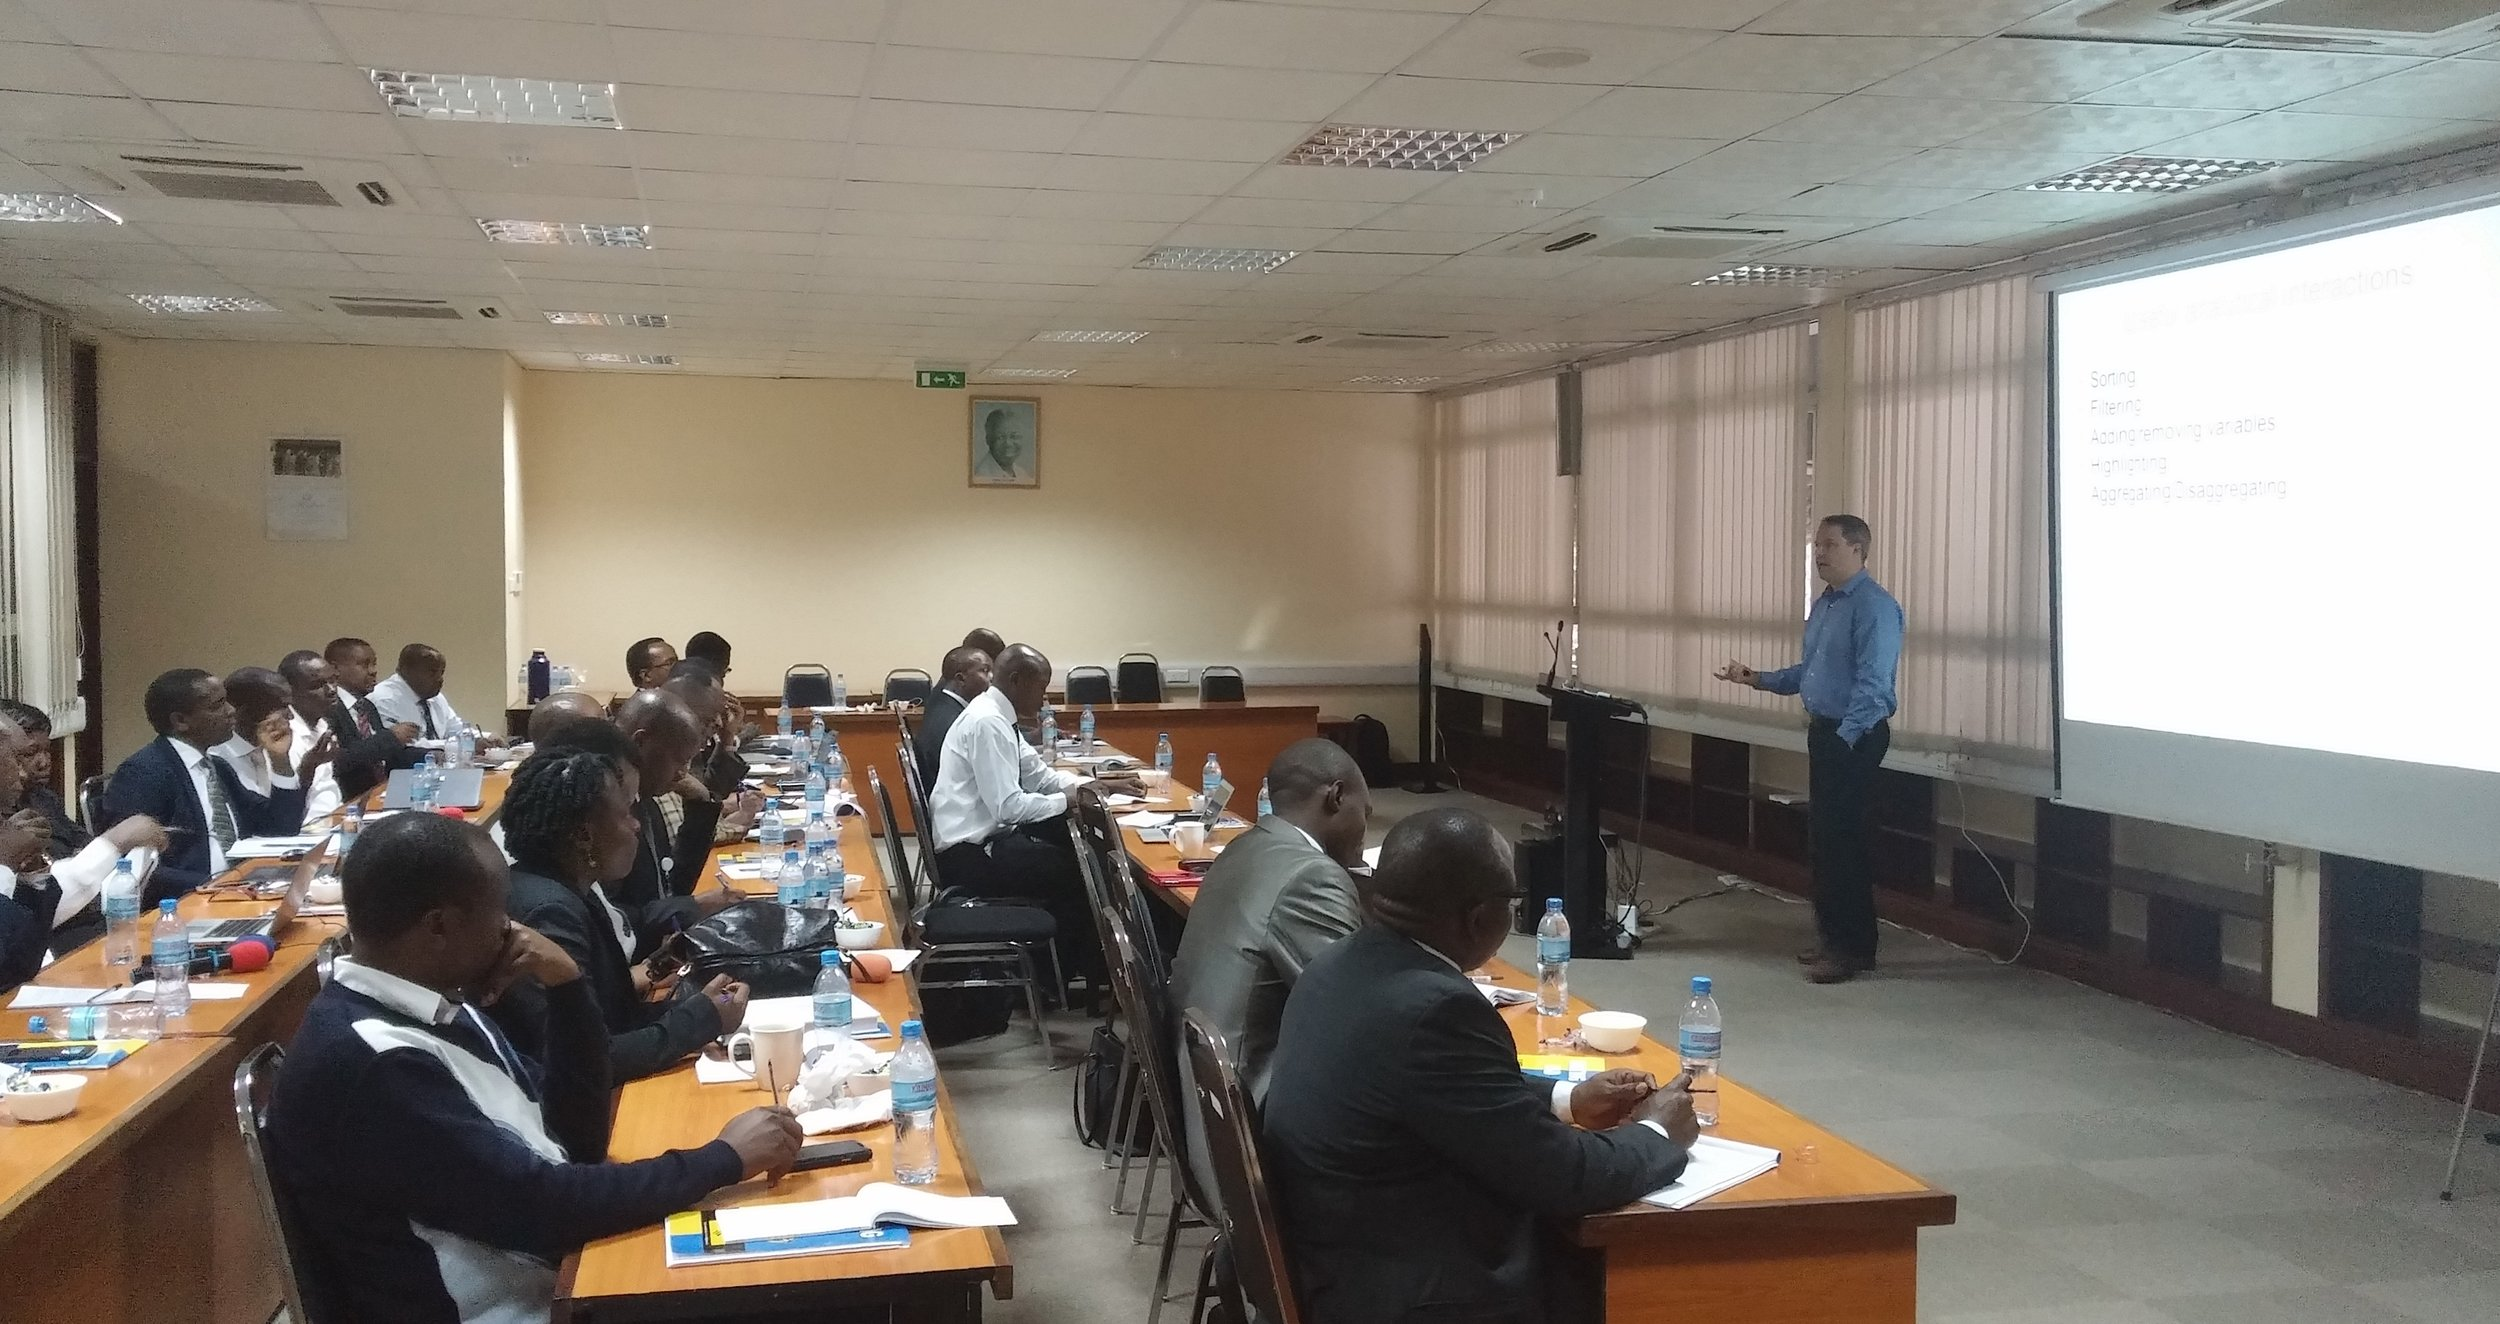 Private workshop at the Central Bank of Tanzania